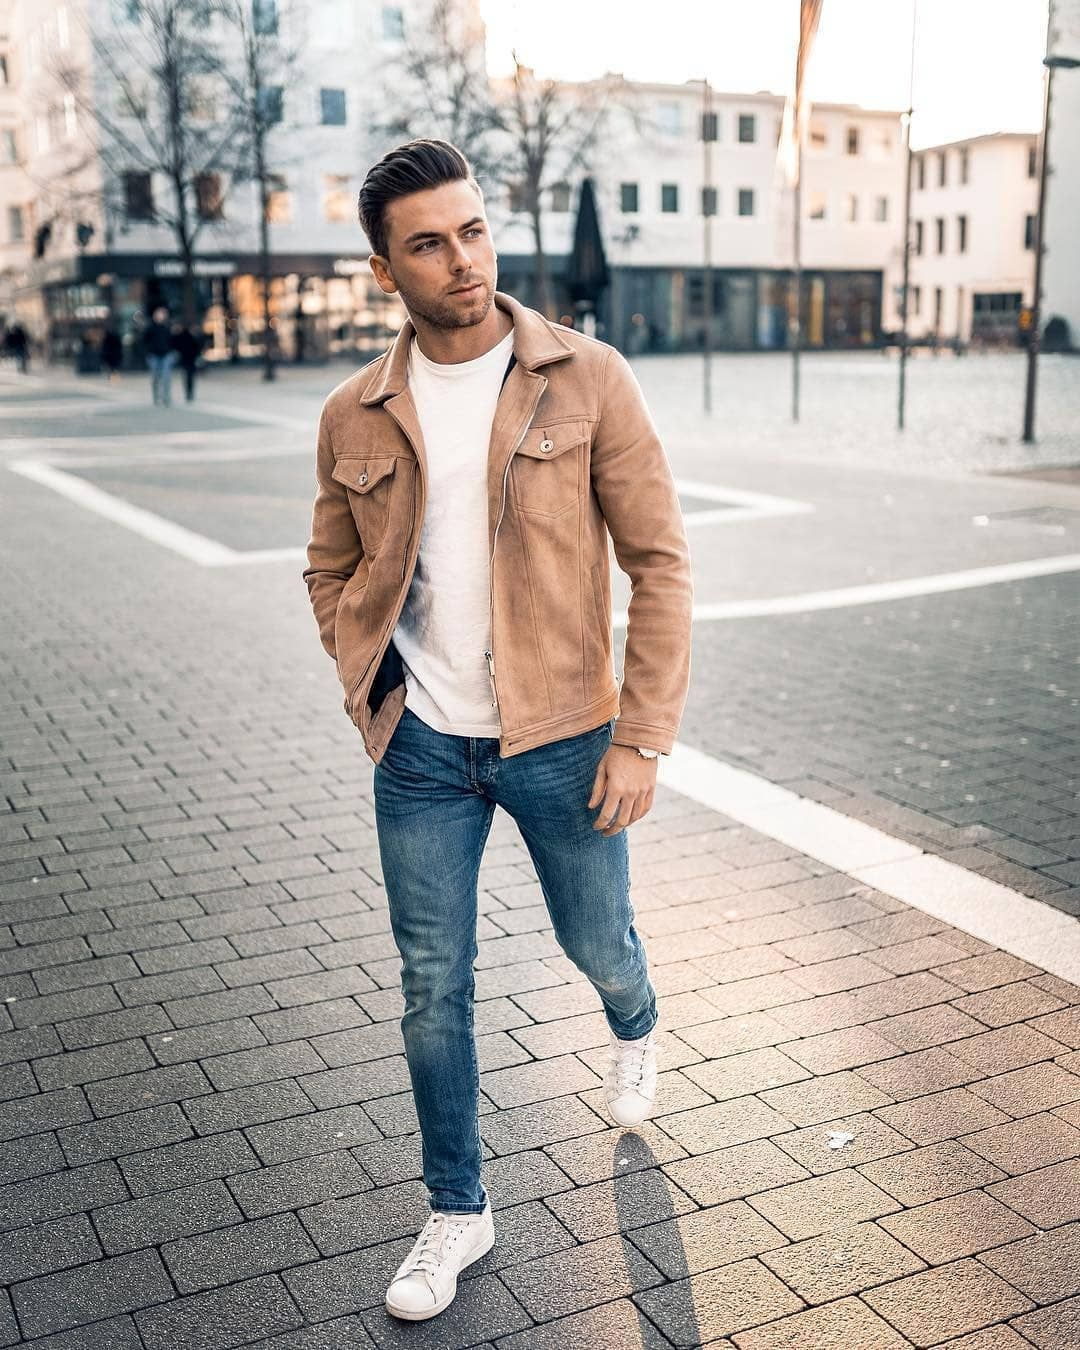 "Men About Fashion on Instagram: ""Let me know what you think about this combo g..."